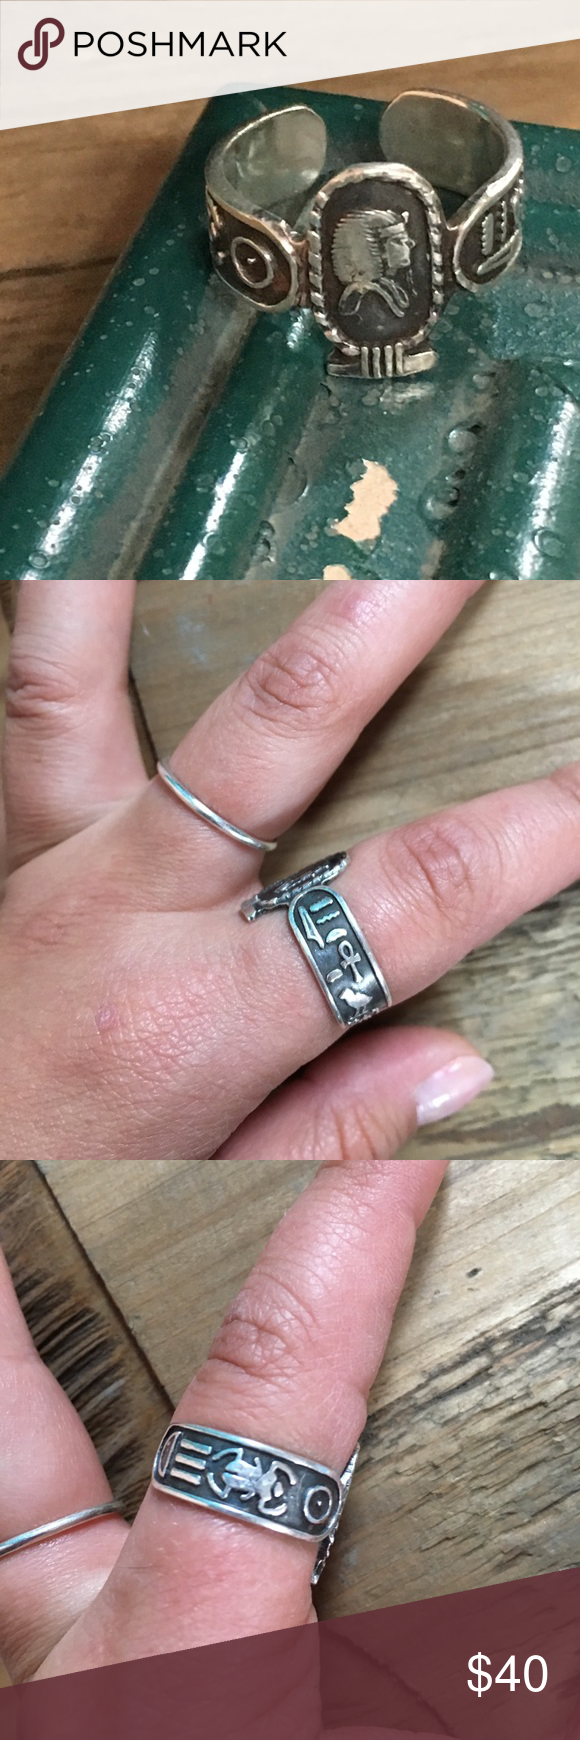 Hieroglyphic ring | Ring, Customer support and Delivery